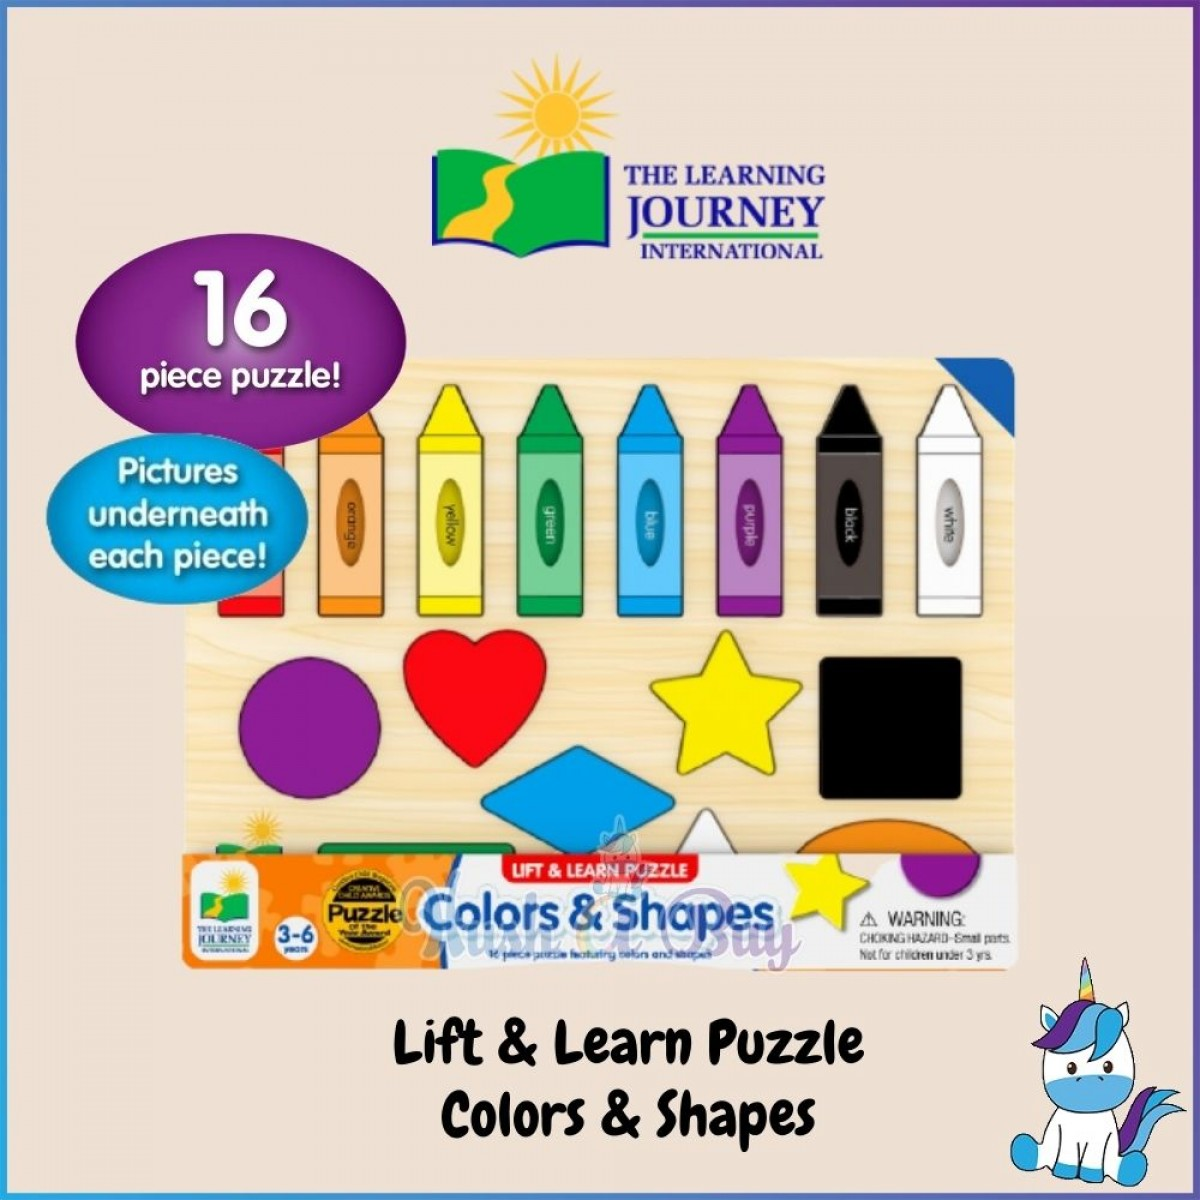 The Learning Journey Internation Puzzle Play - Lift & Learn Color Web/Clock/Color & Shapes